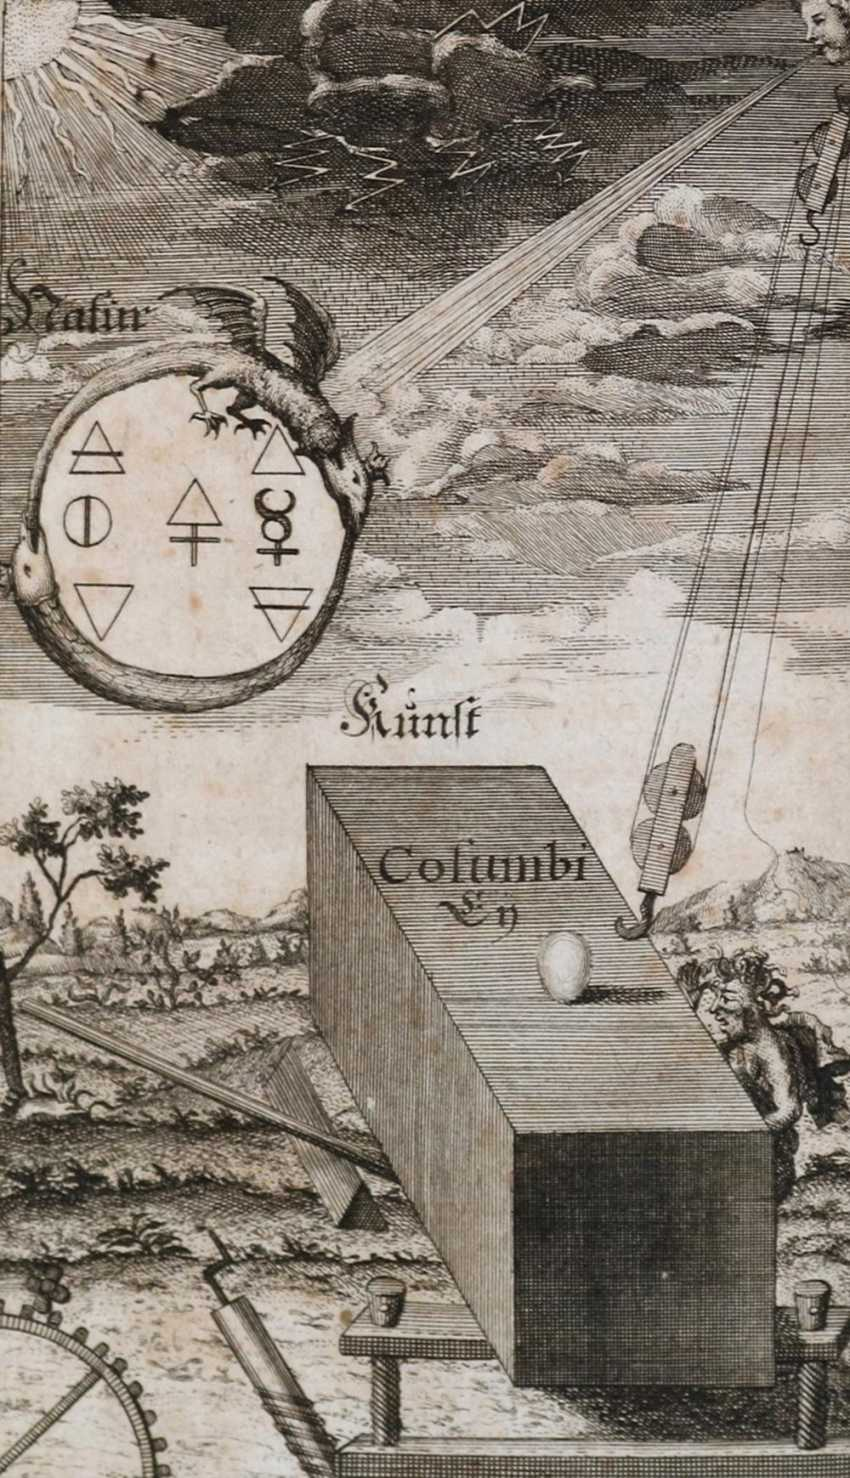 Kre(t)zschmer, P. - photo 1